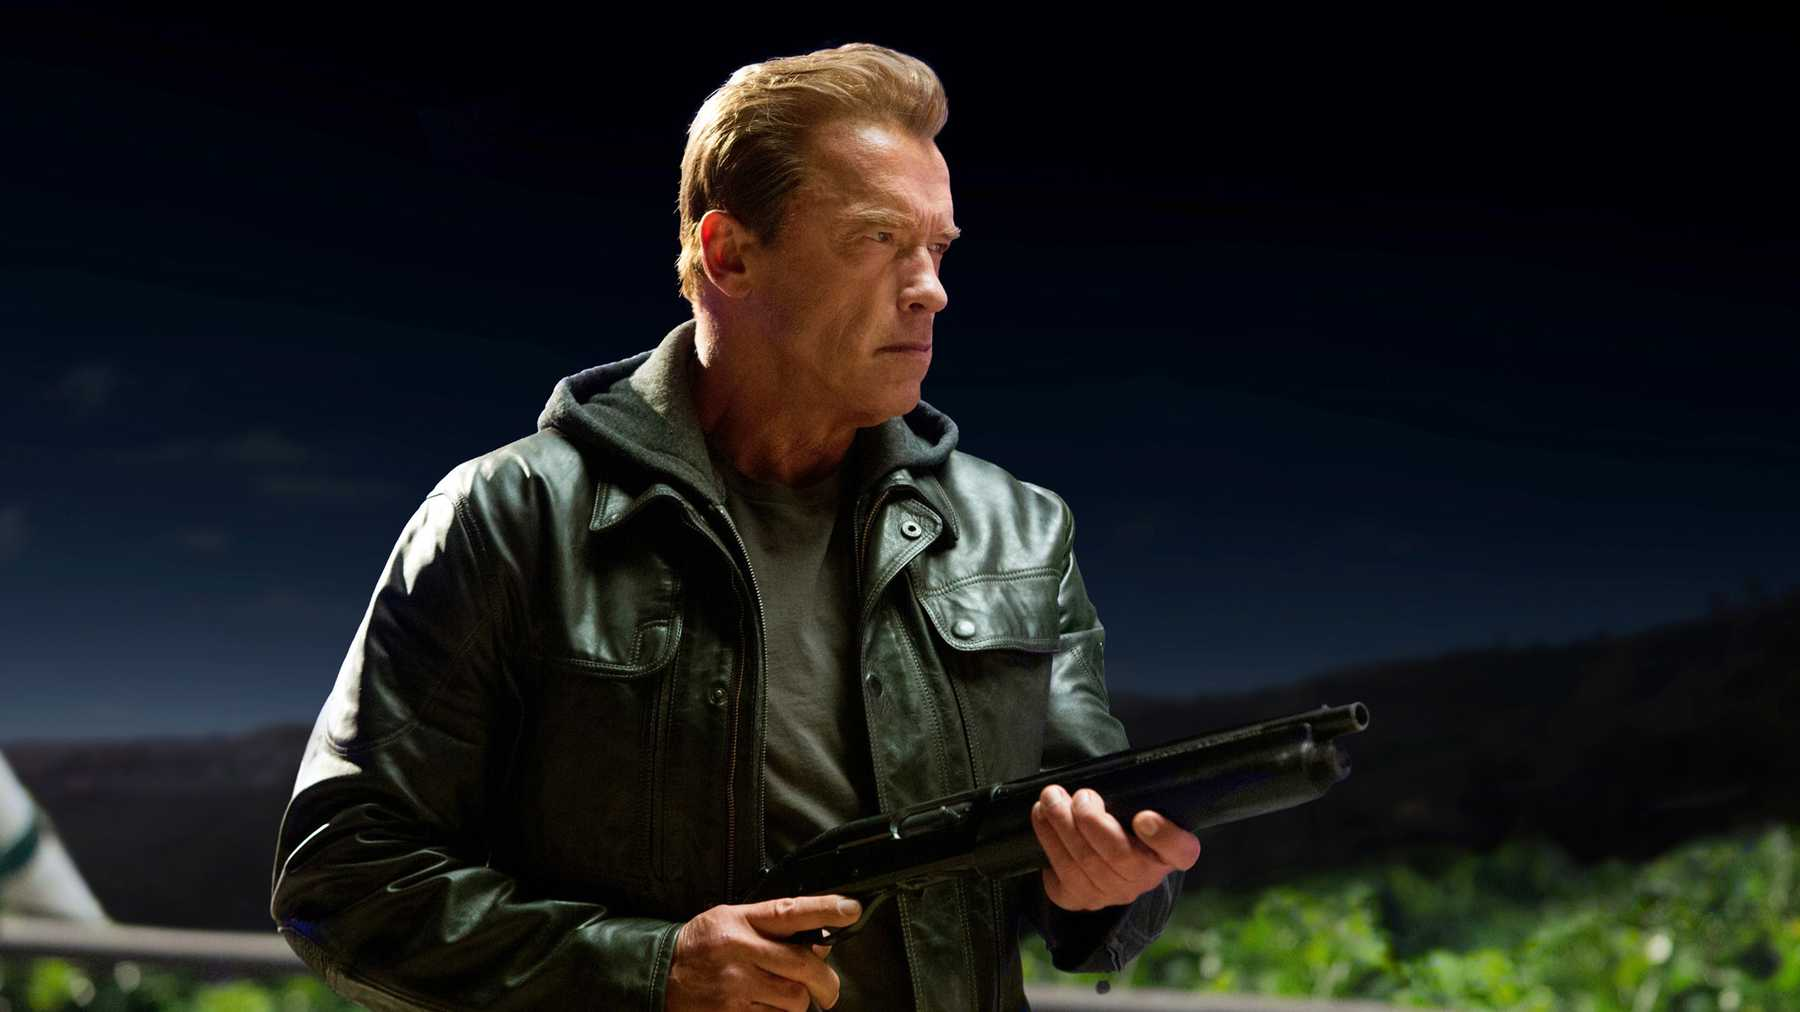 Terminator: Arnold Schwarzenegger Talks More About The New Film